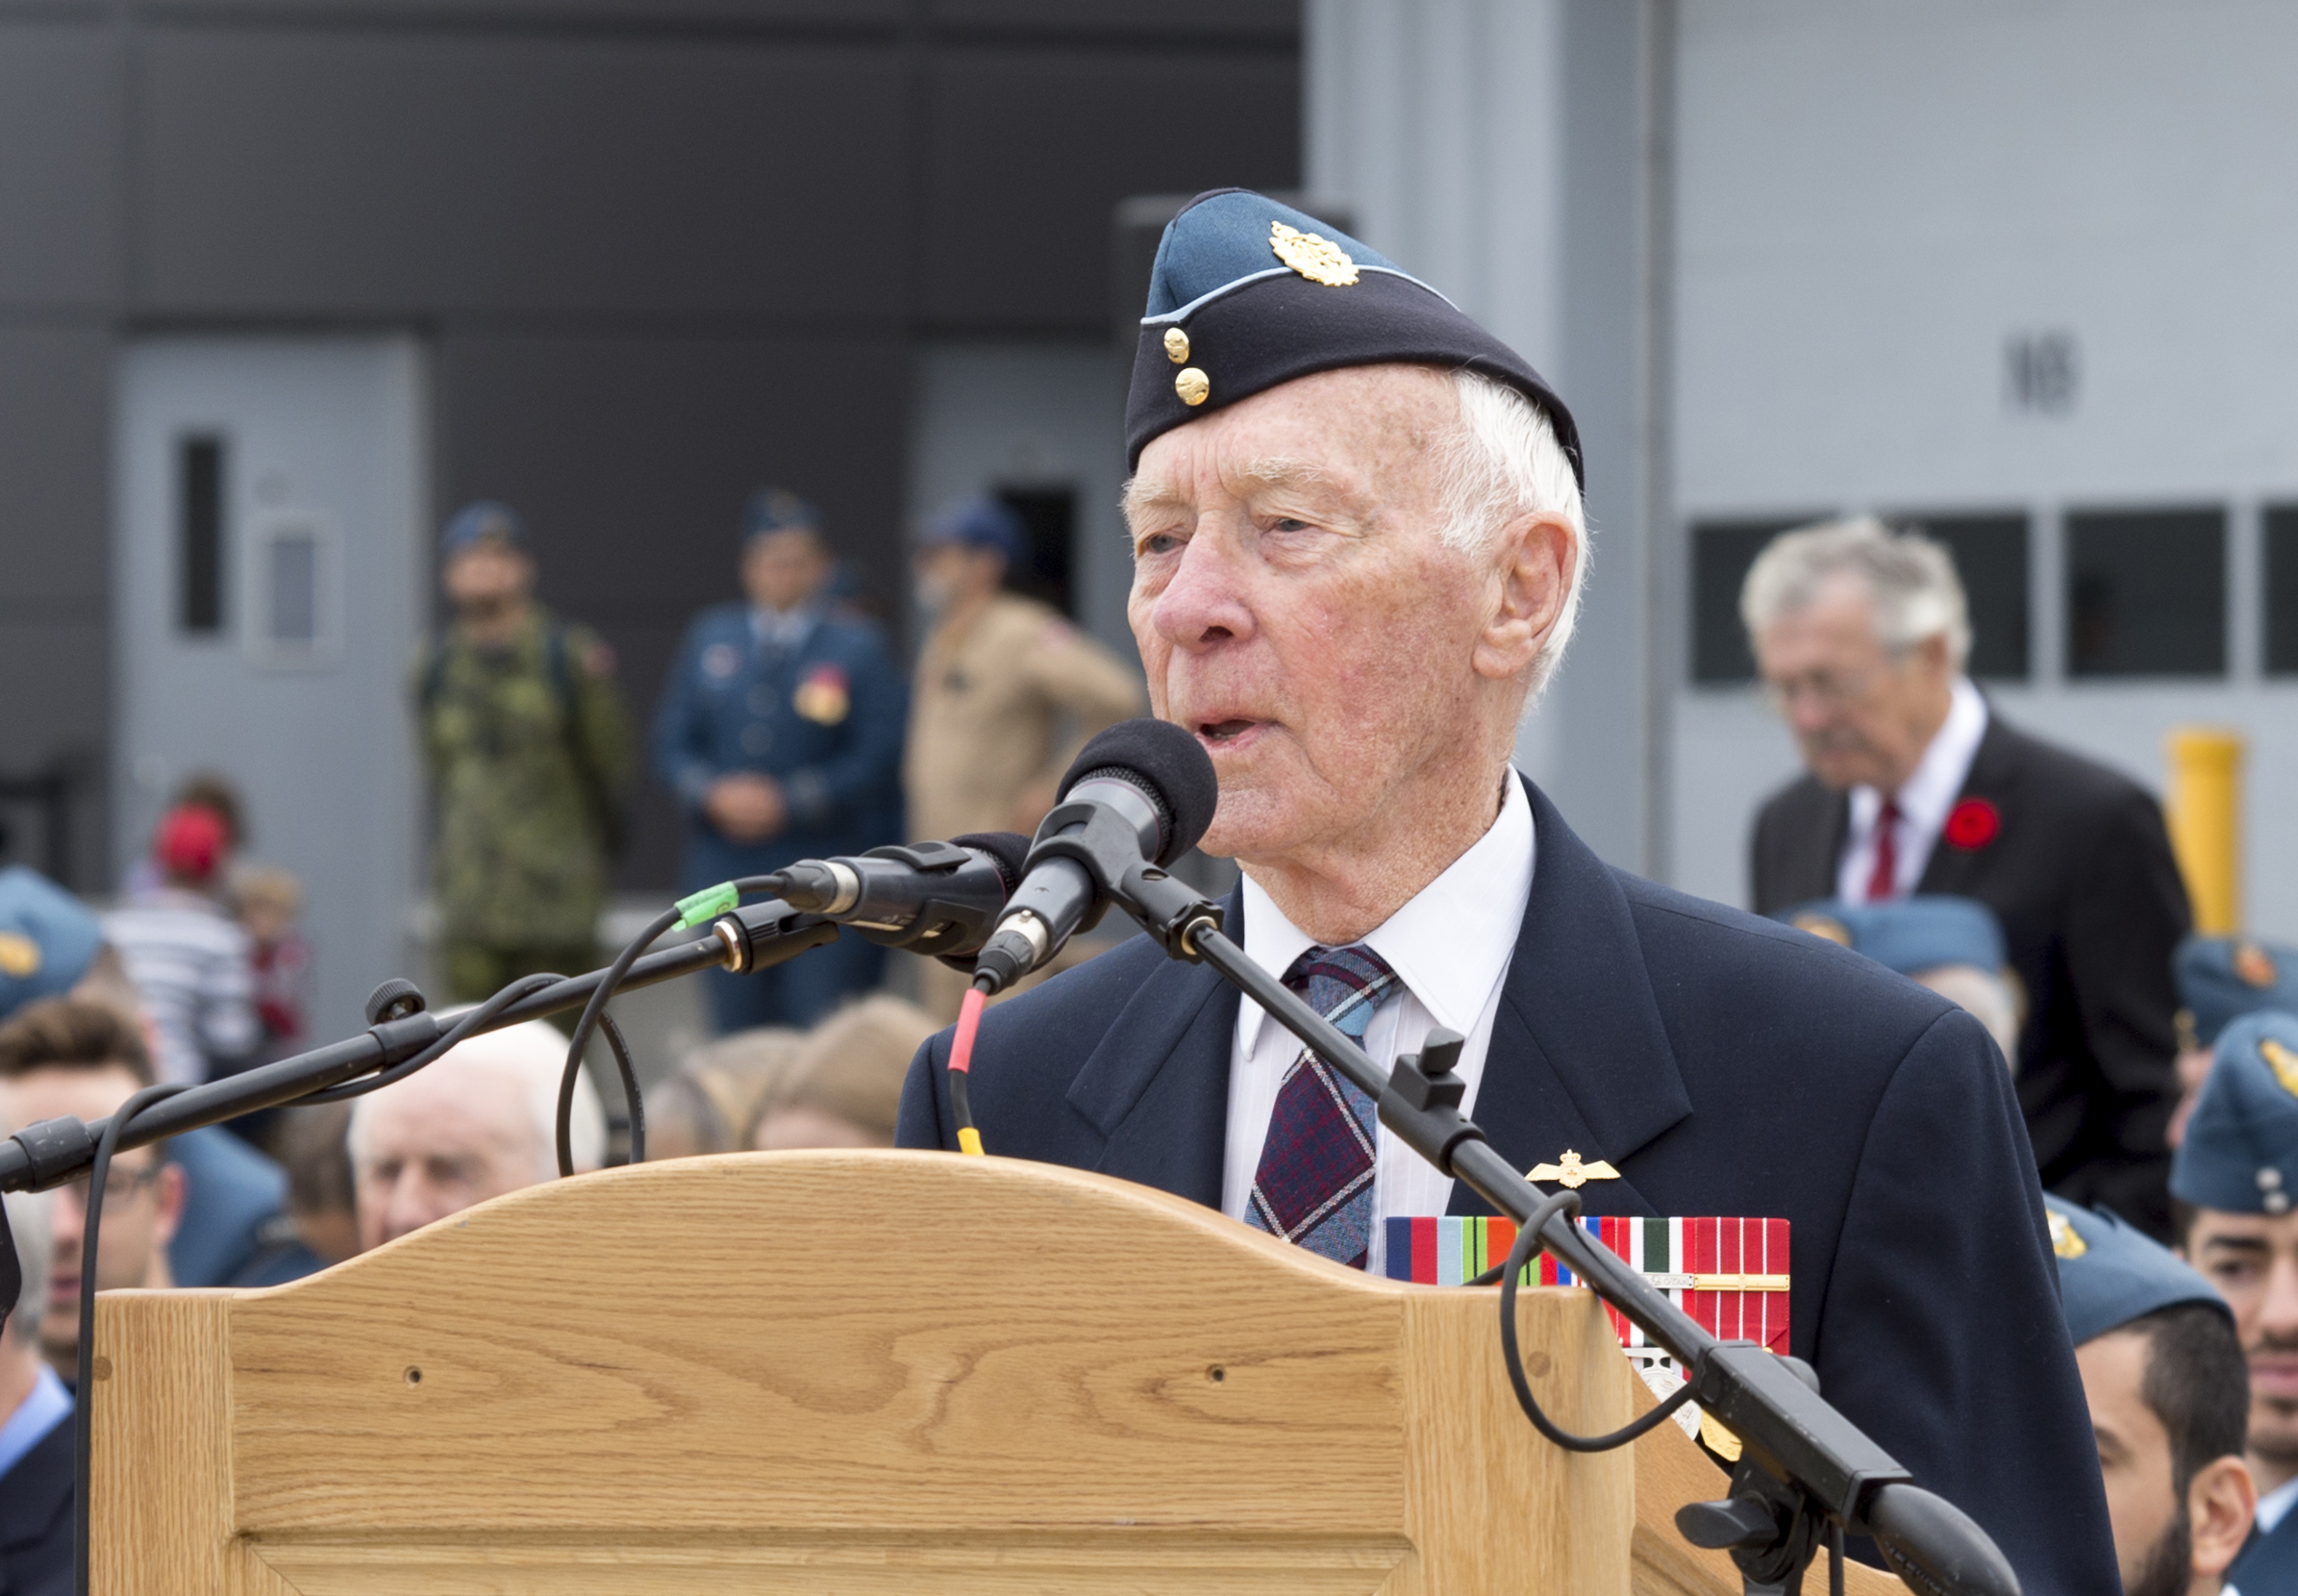 An elderly man, wearing a jacket and tartan tie and a wedge cap, with medals on his jacket, stands behind a podium speaking into microphones.